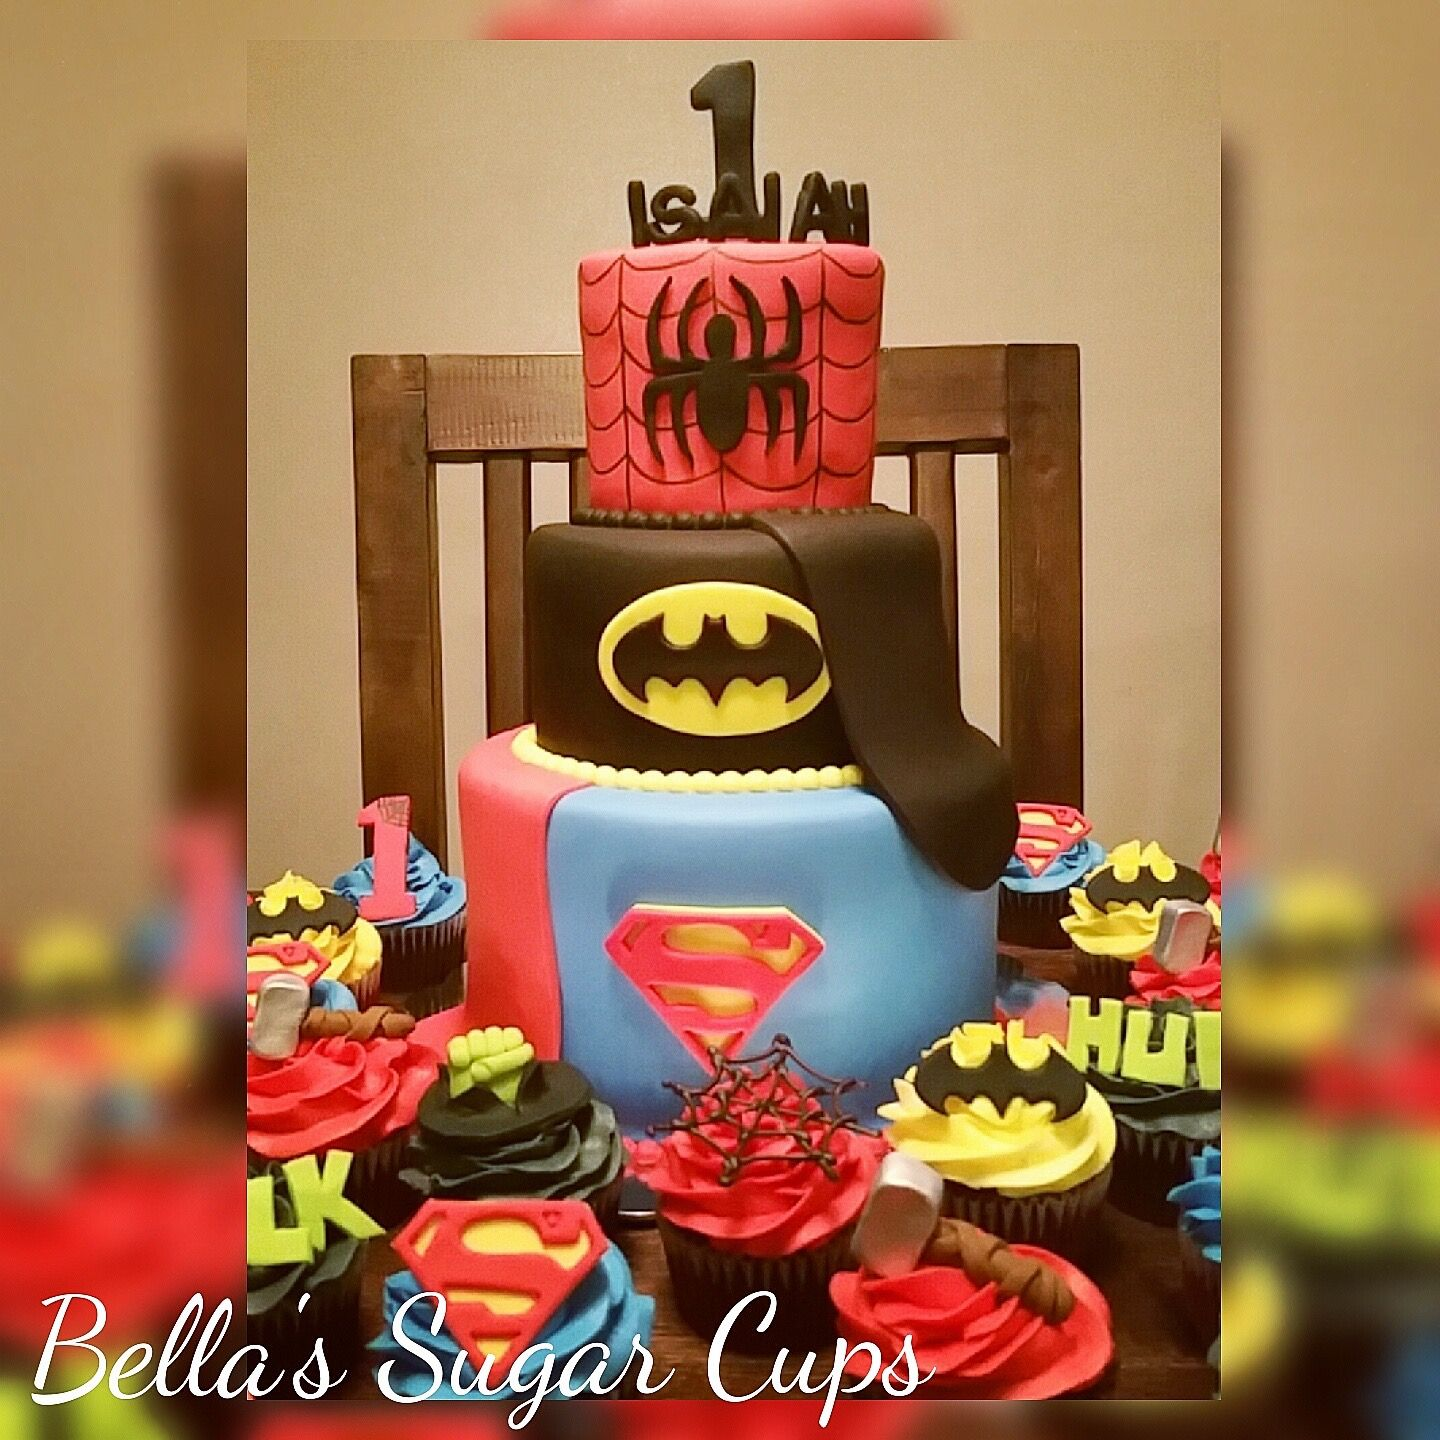 Bella's Sugar Cups offering Designer Cakes, Cupcakes and Chocolate Covered Strawberries for all occasions. Message Christina Rodriguez at 661.348.8472 Thank You! 😍